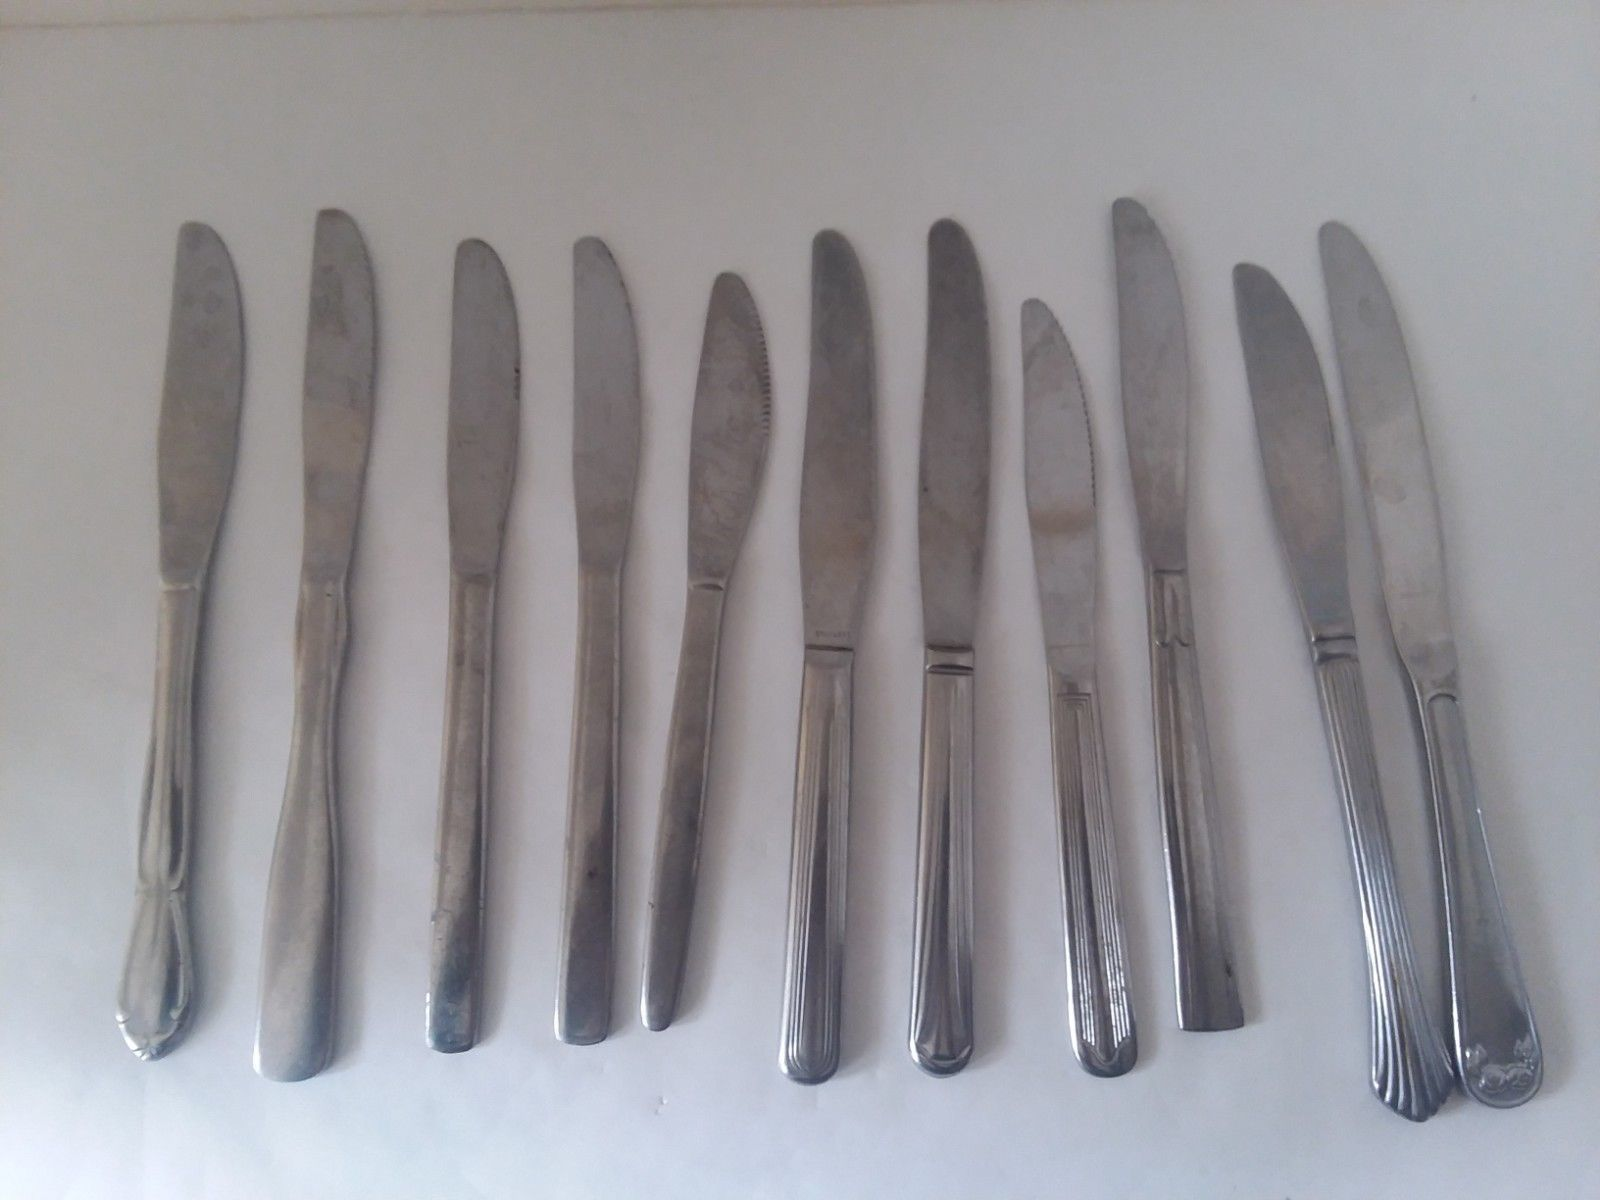 Primary image for 11 Misc. Lot of Stainless Steel Butter Knives Mixed Pattern Cutlery Crafts DIY